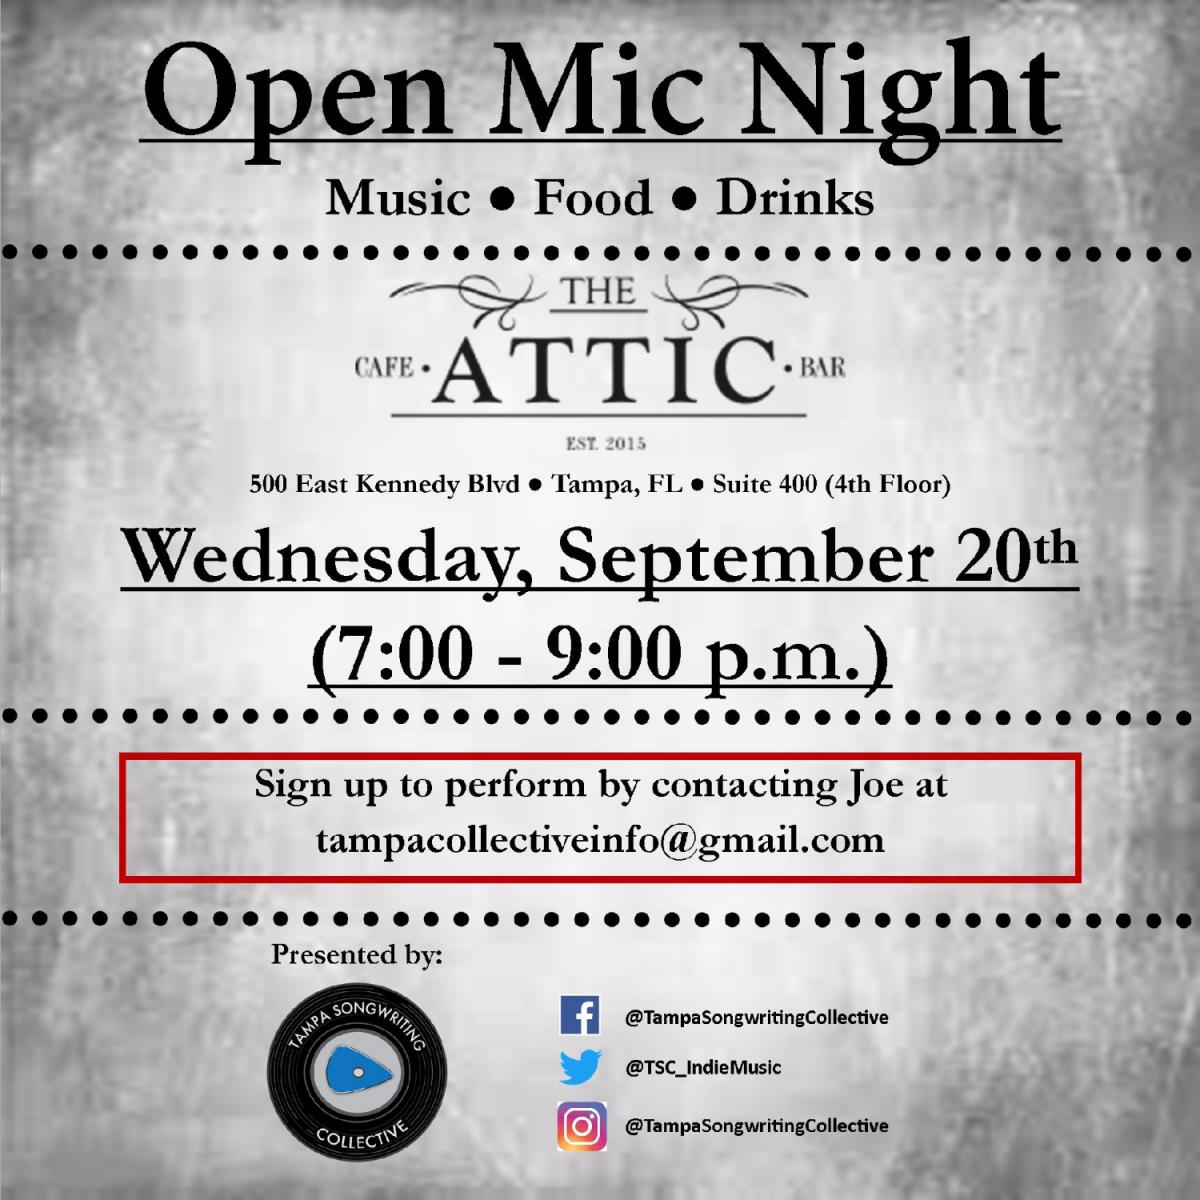 Open Mic Night at The Attic Cafe